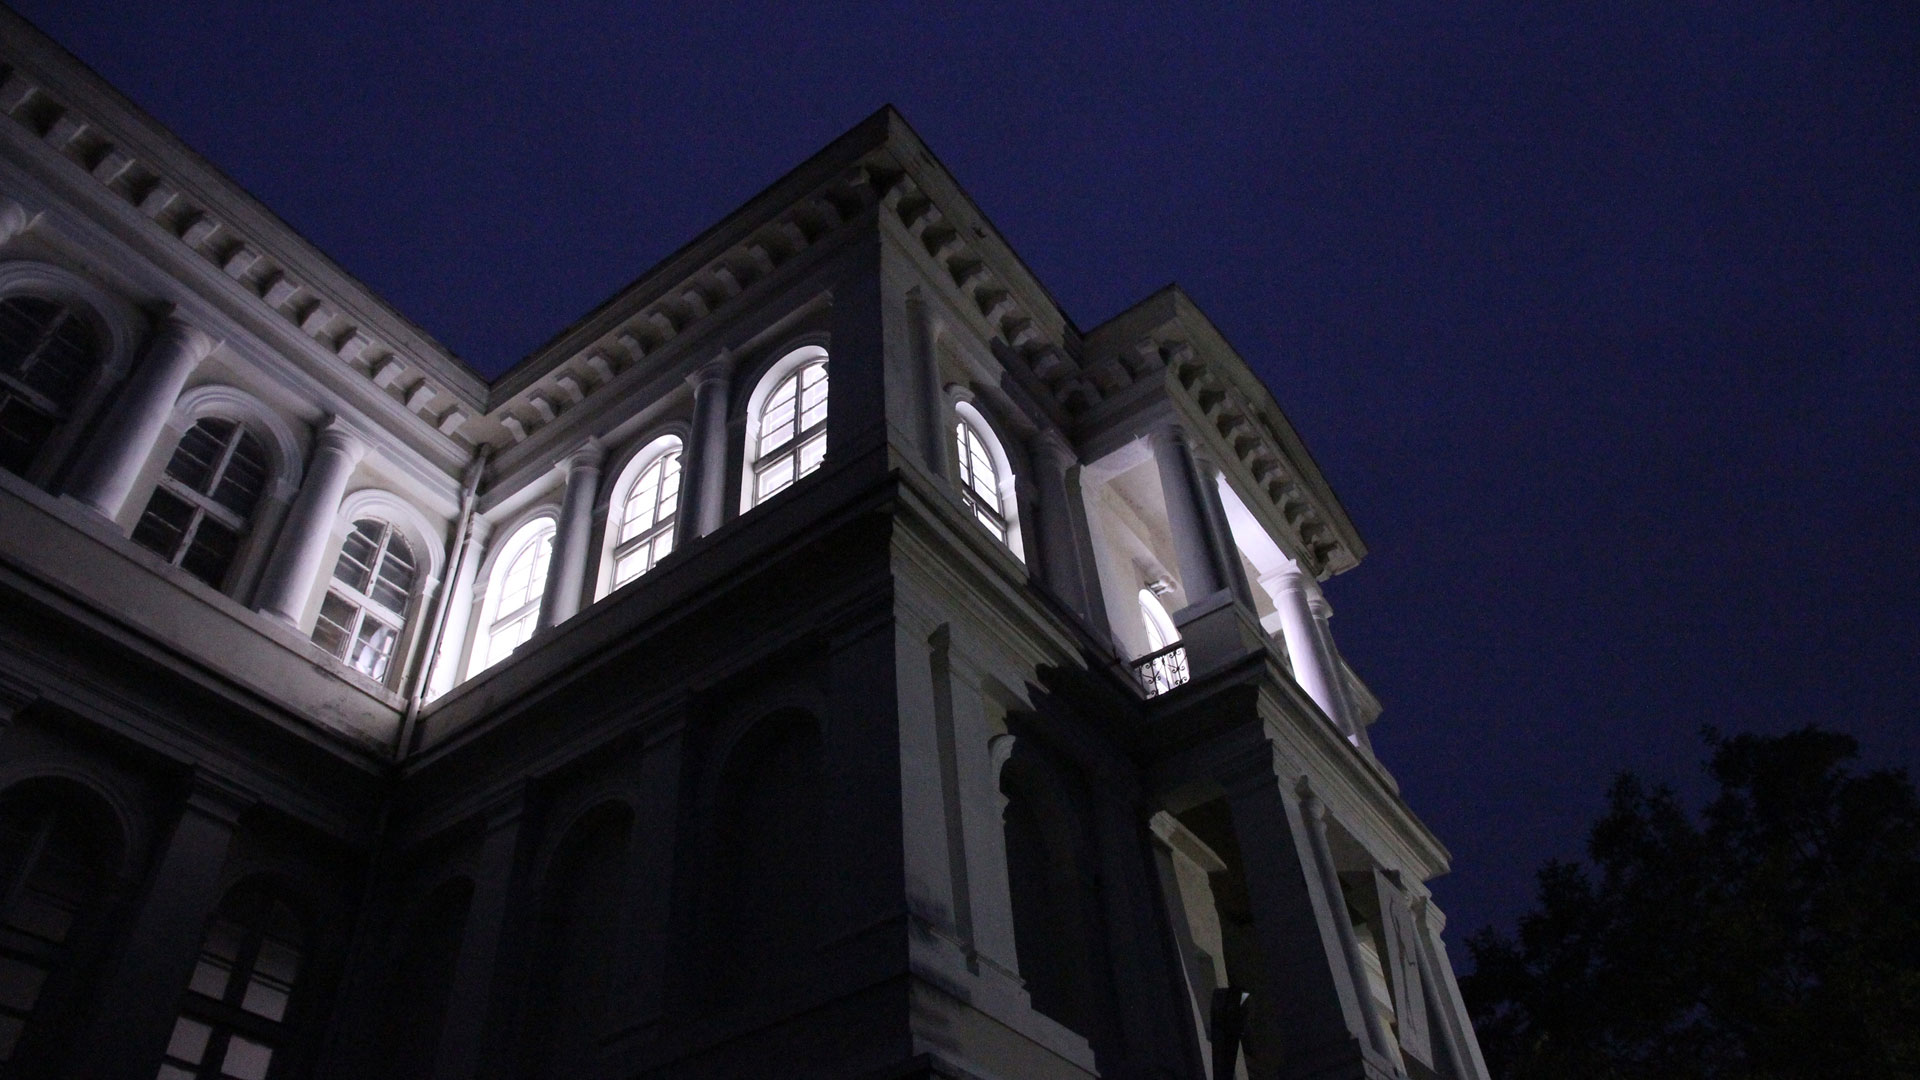 HR-Stamenov, Space 0 Space, 2012, light installation with sound, City Museum of Fine Arts, Plovdiv